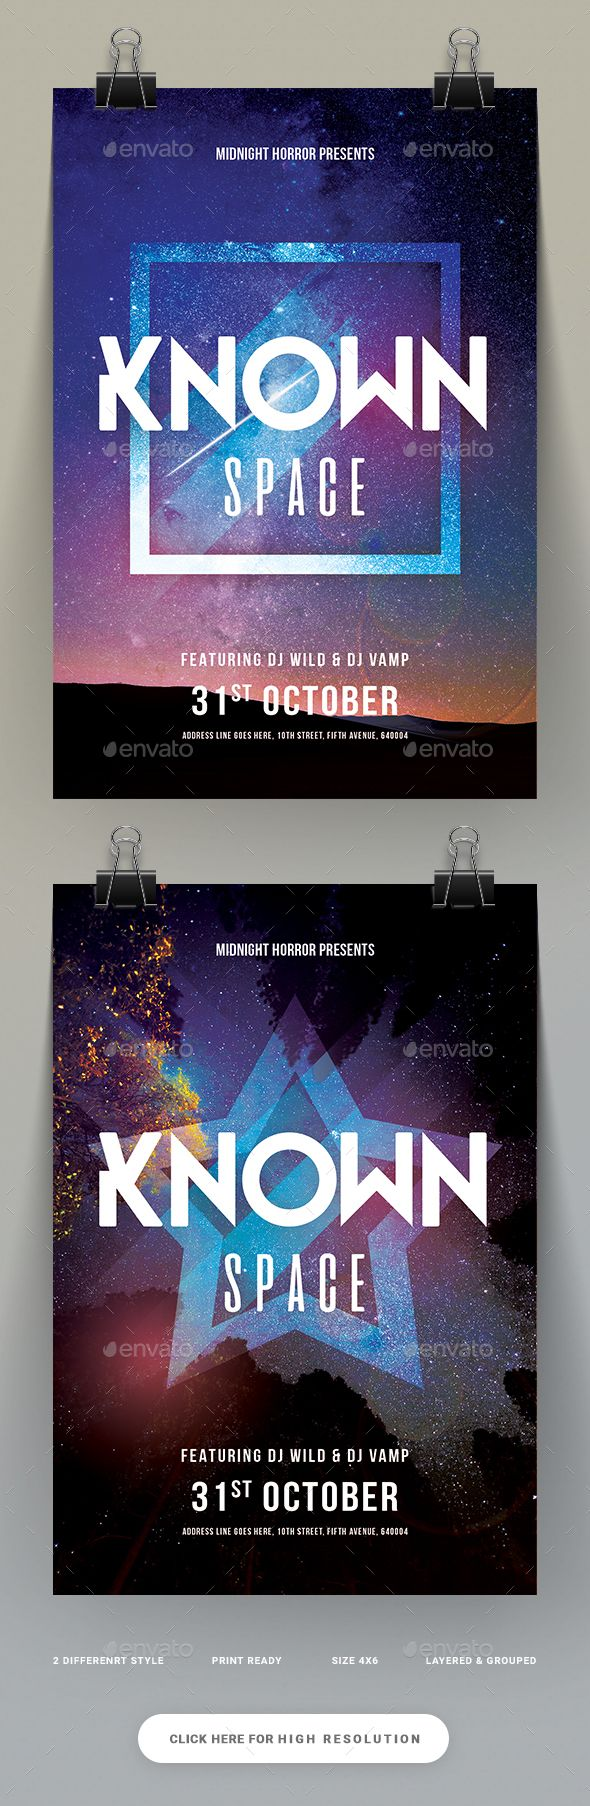 Known Space Party Flyer  — PSD Template #amable #dark • Download ➝…